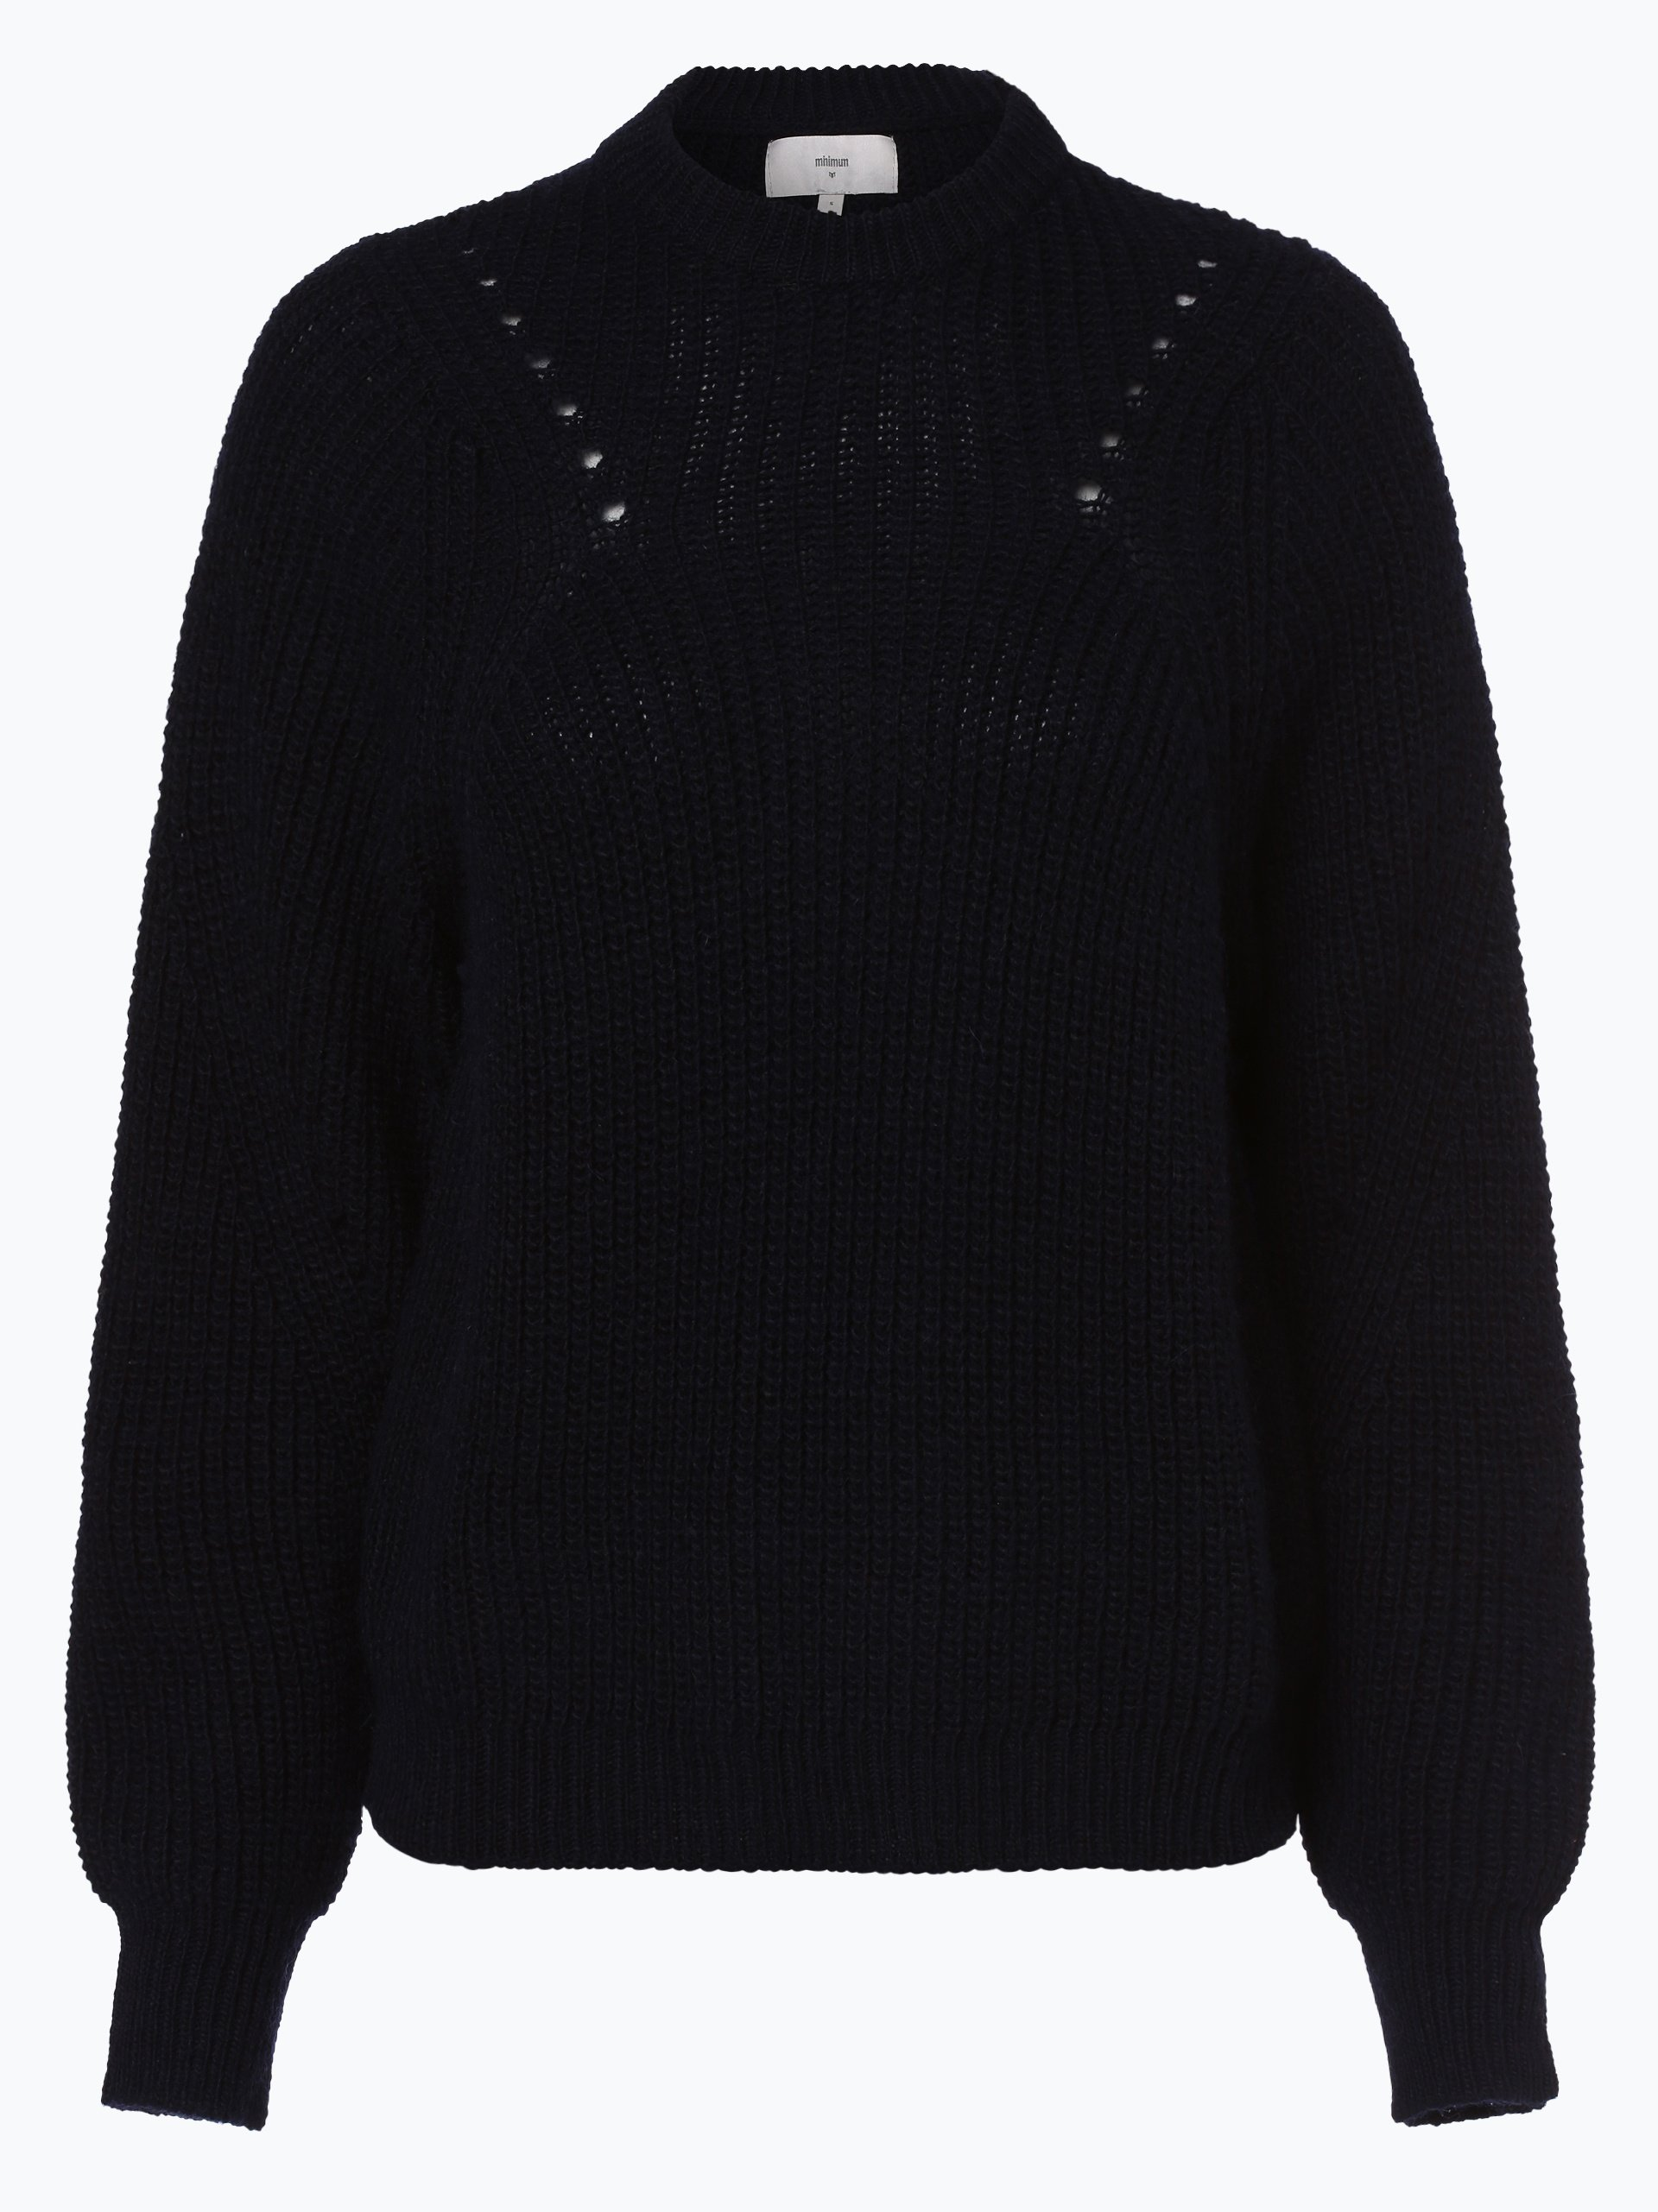 Minimum Damen Pullover mit Alpaka-Anteil - Allirea